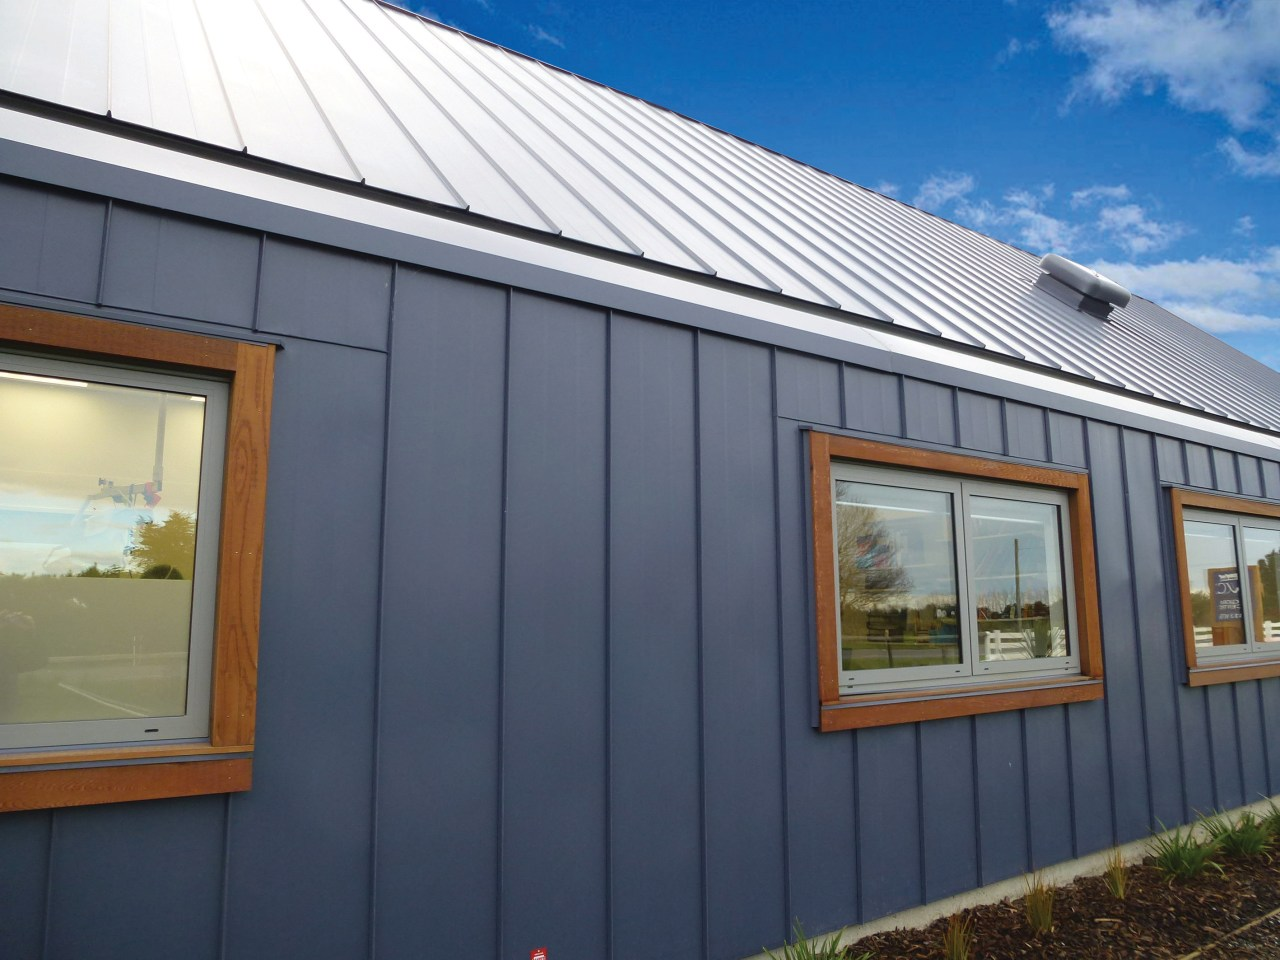 Heritage-Tray roofing by Calder Stewart provides new profile, facade, home, house, property, real estate, roof, shed, siding, window, blue, gray